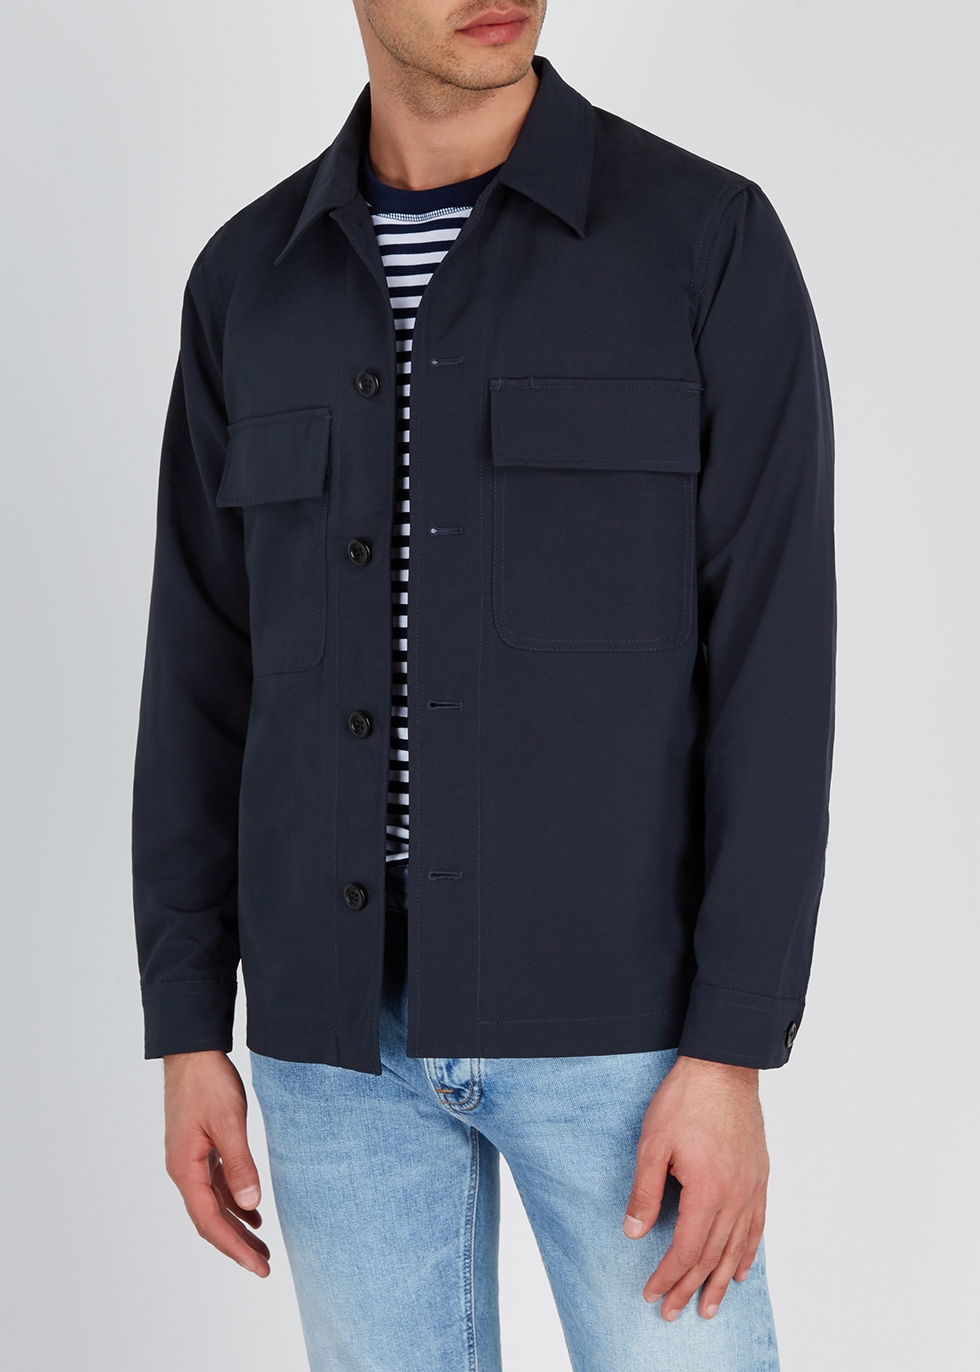 Kyle navy shell jacket - Norse Projects